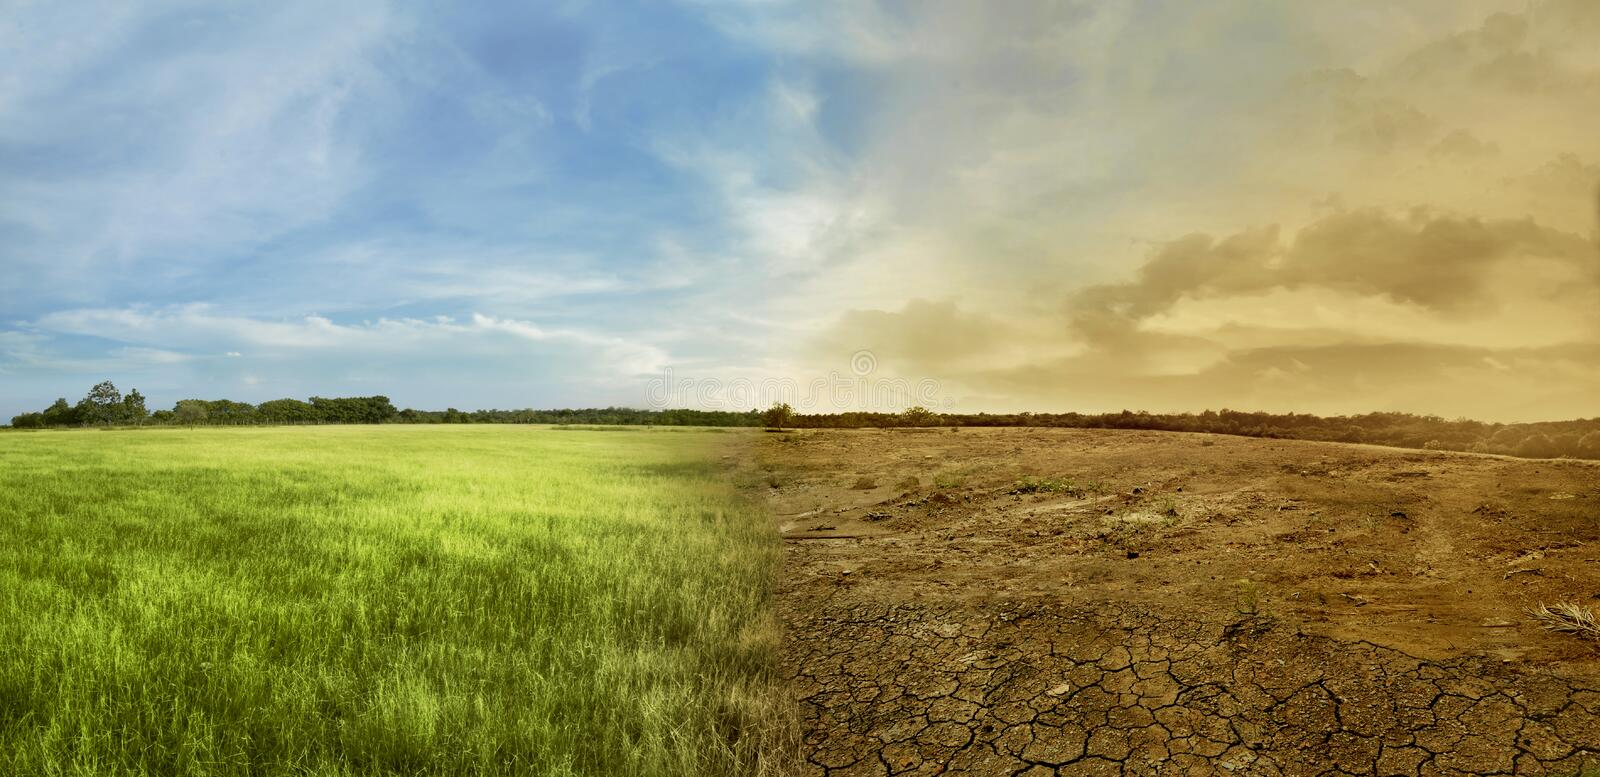 Landscape of meadow field with the changing environment stock photography